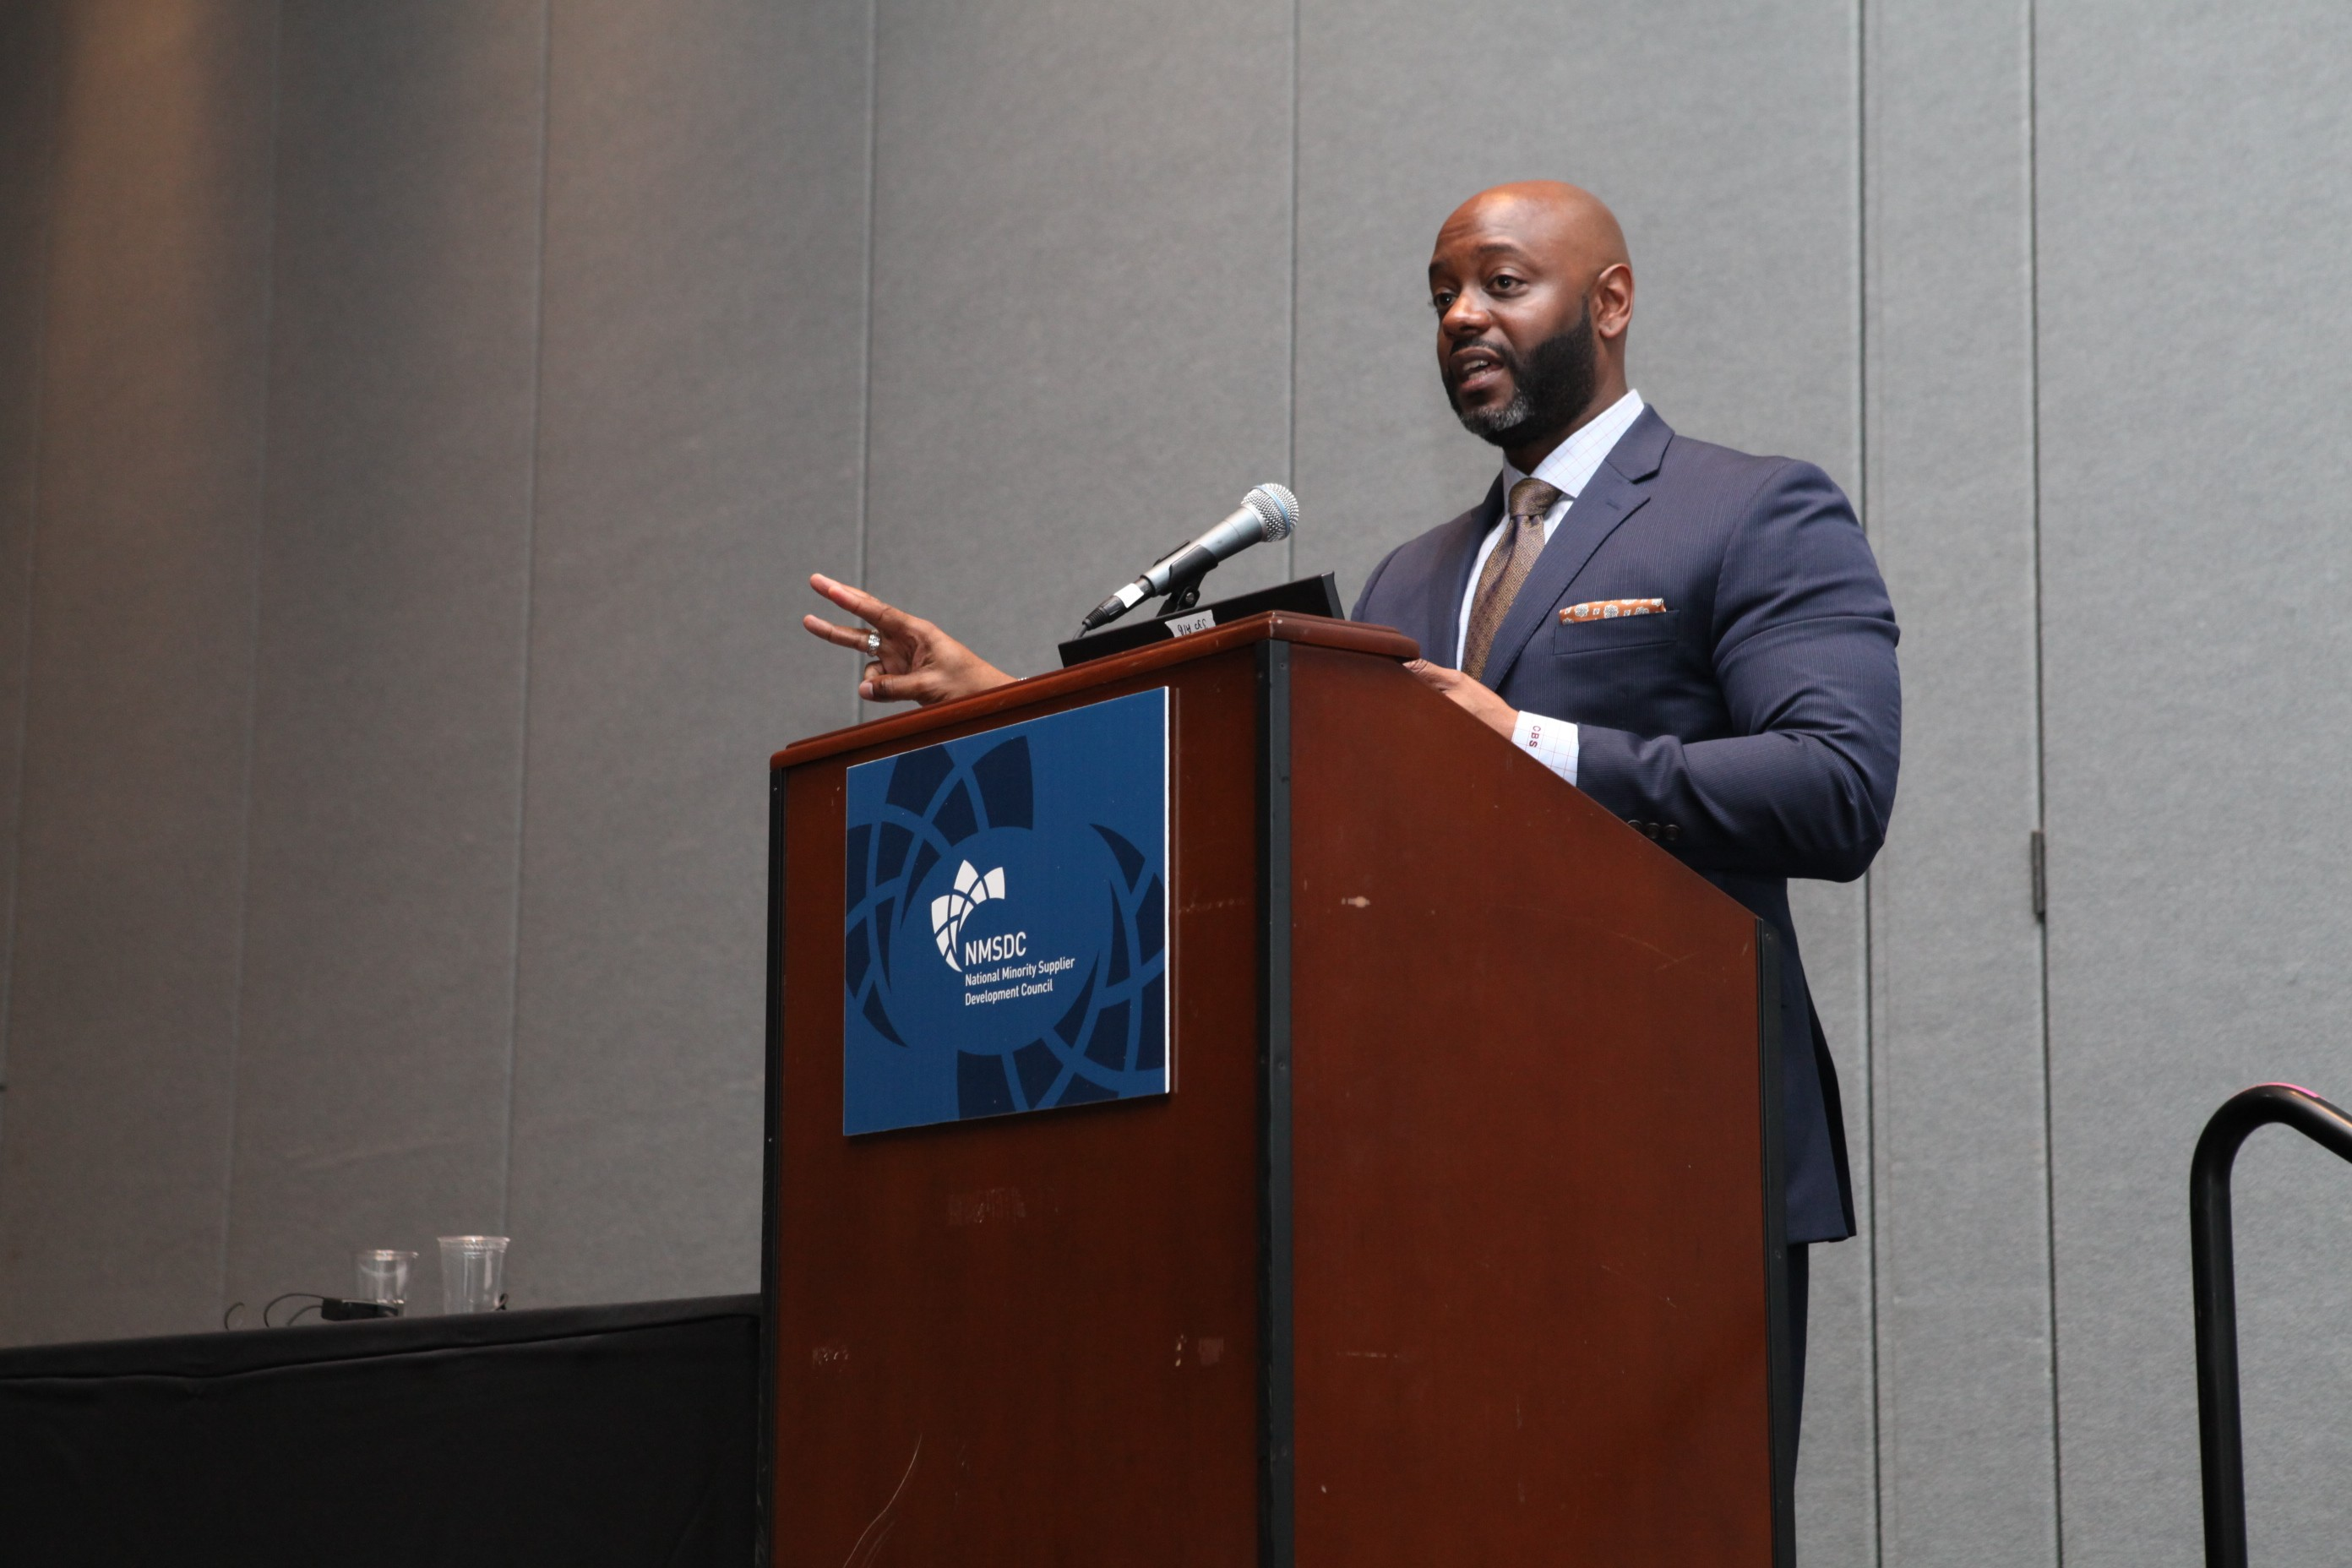 Panelist Corey Smith of Major League Baseball talks to NMSDC attendees about assessing supplier development options and implementing effective growth strategies for MBEs.